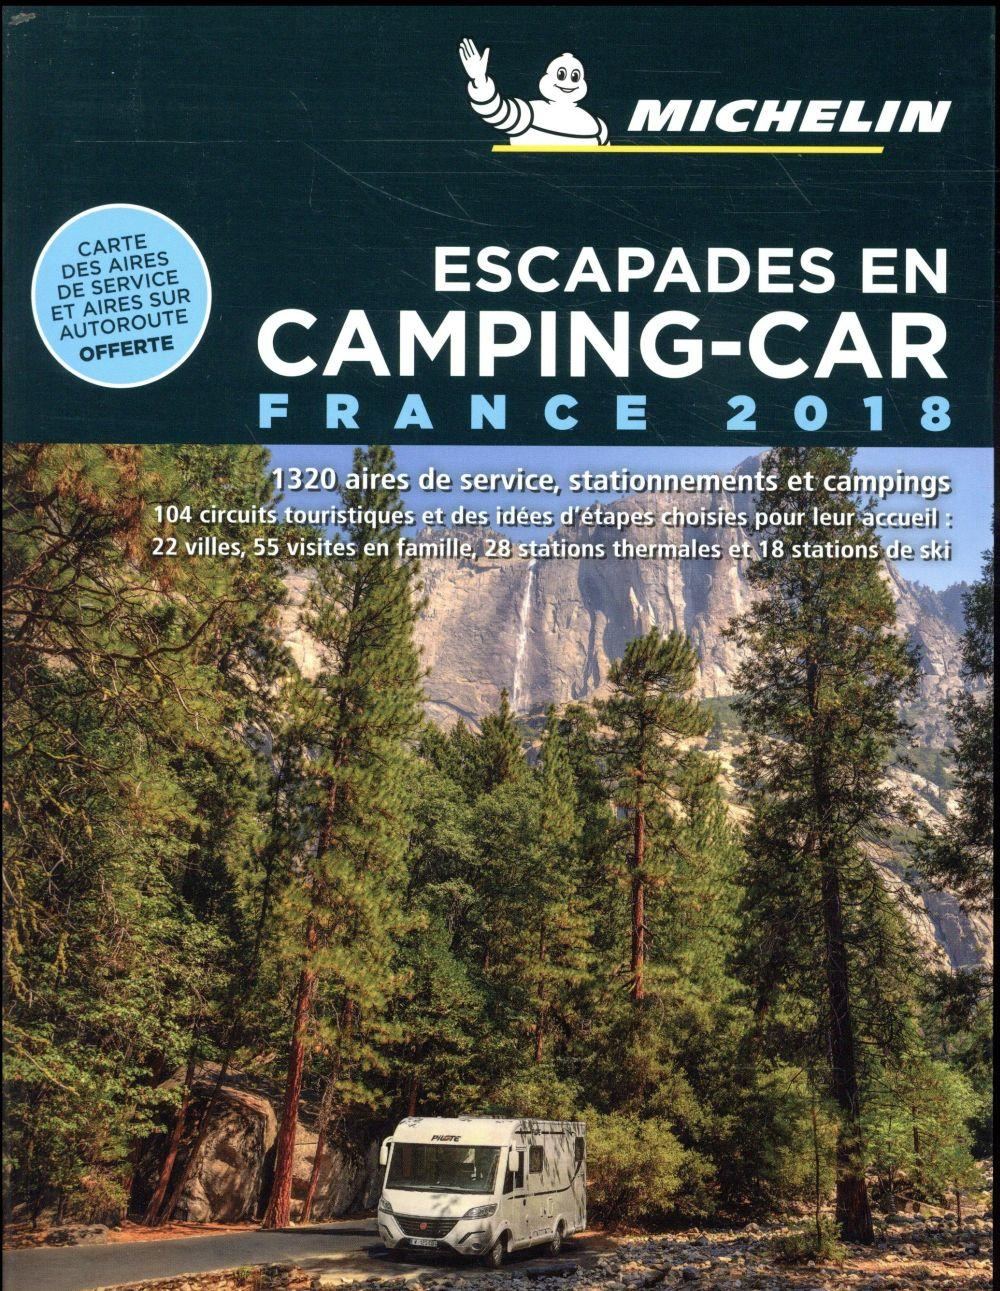 Vente  Escapades en camping-car france 2018  - Collectif Michelin